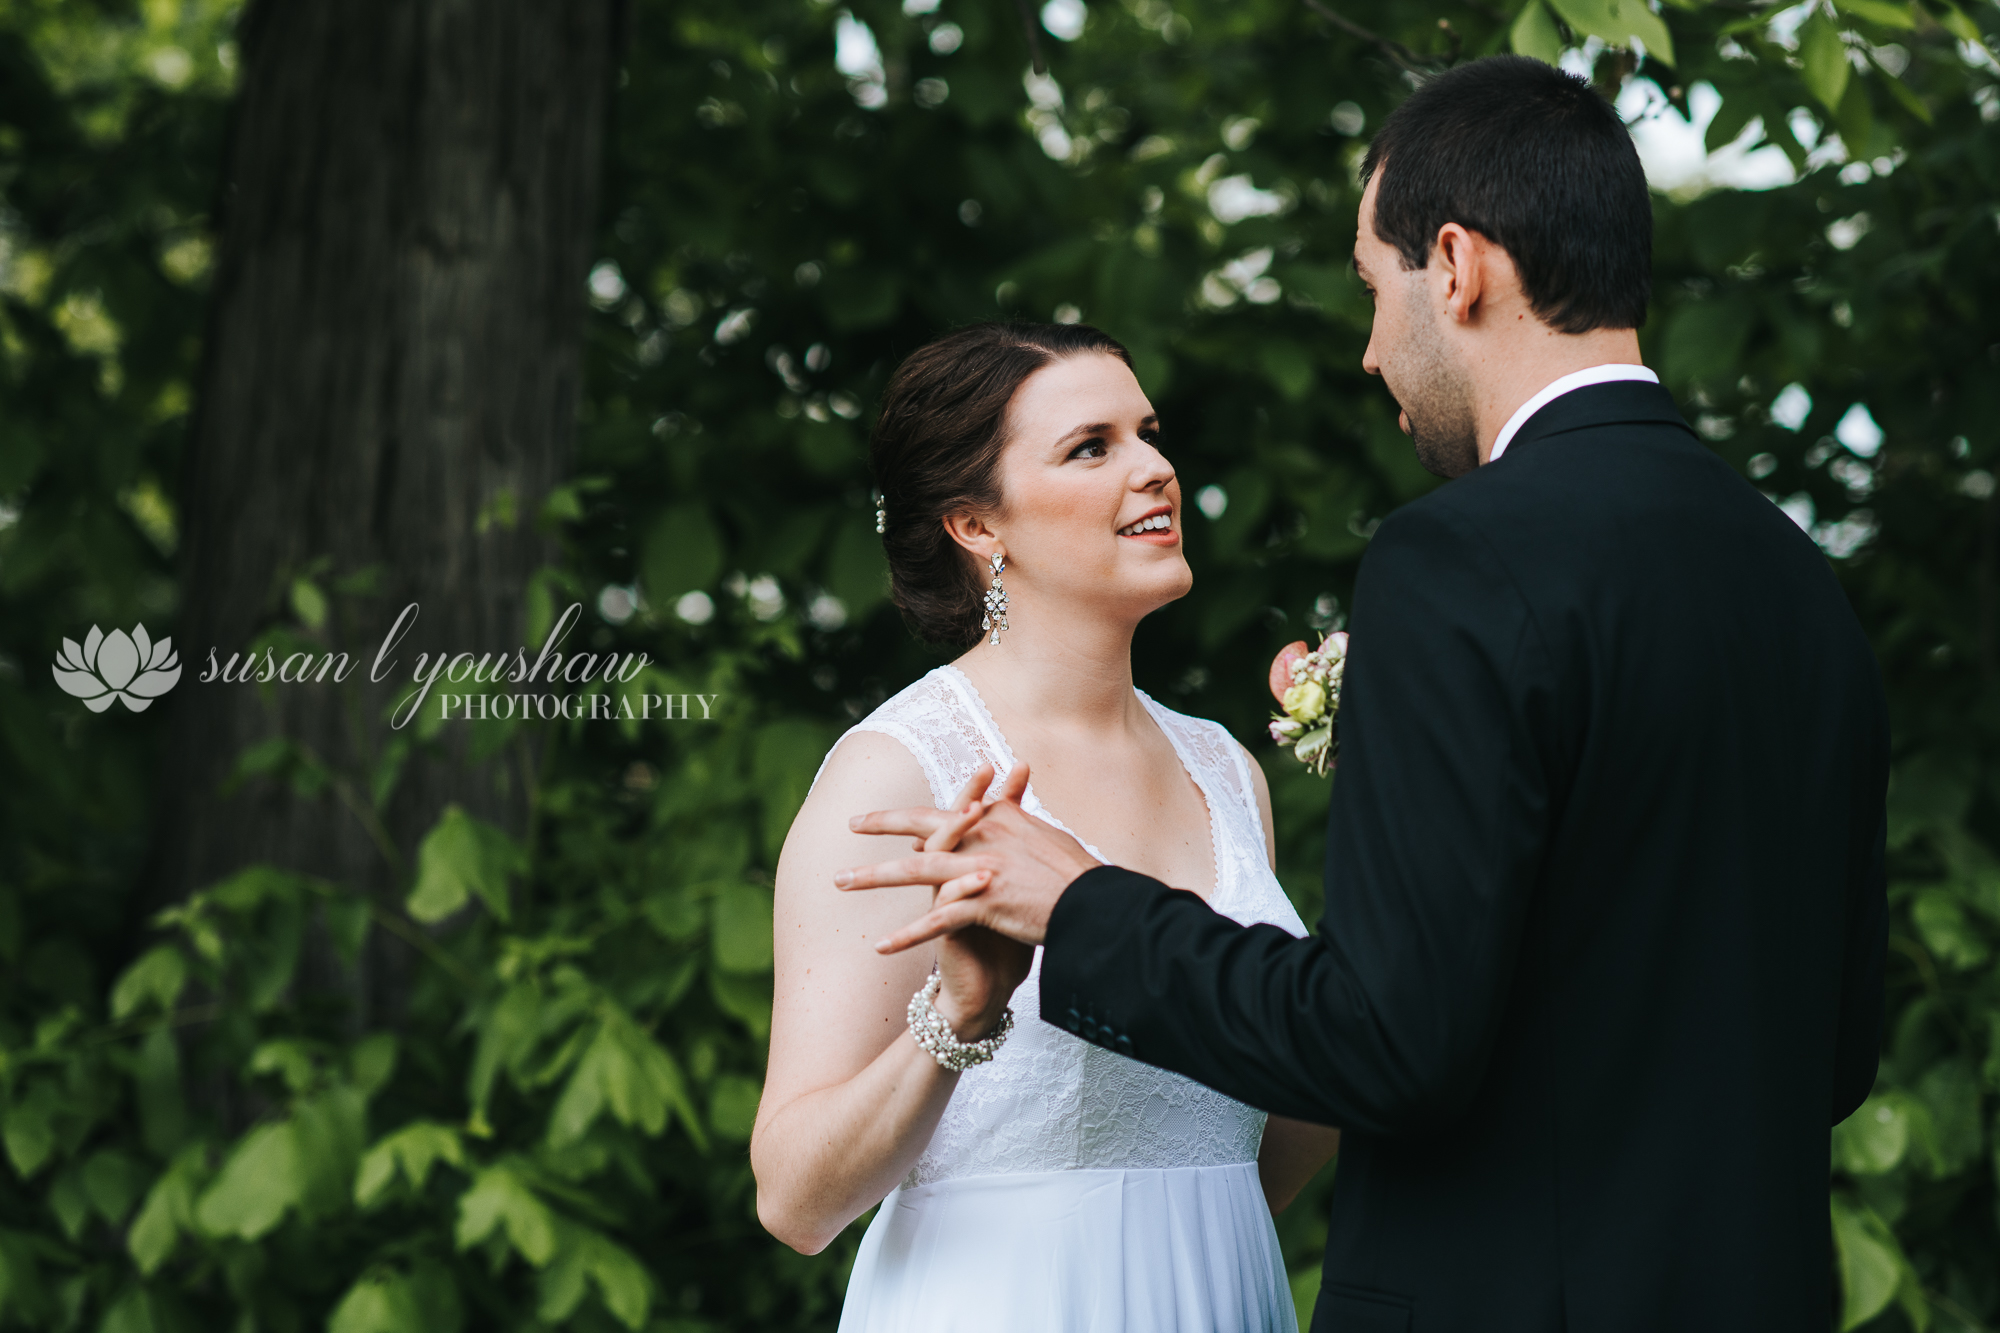 Adena and  Erik Wedding 05-17-2019 SLY Photography-25.jpg